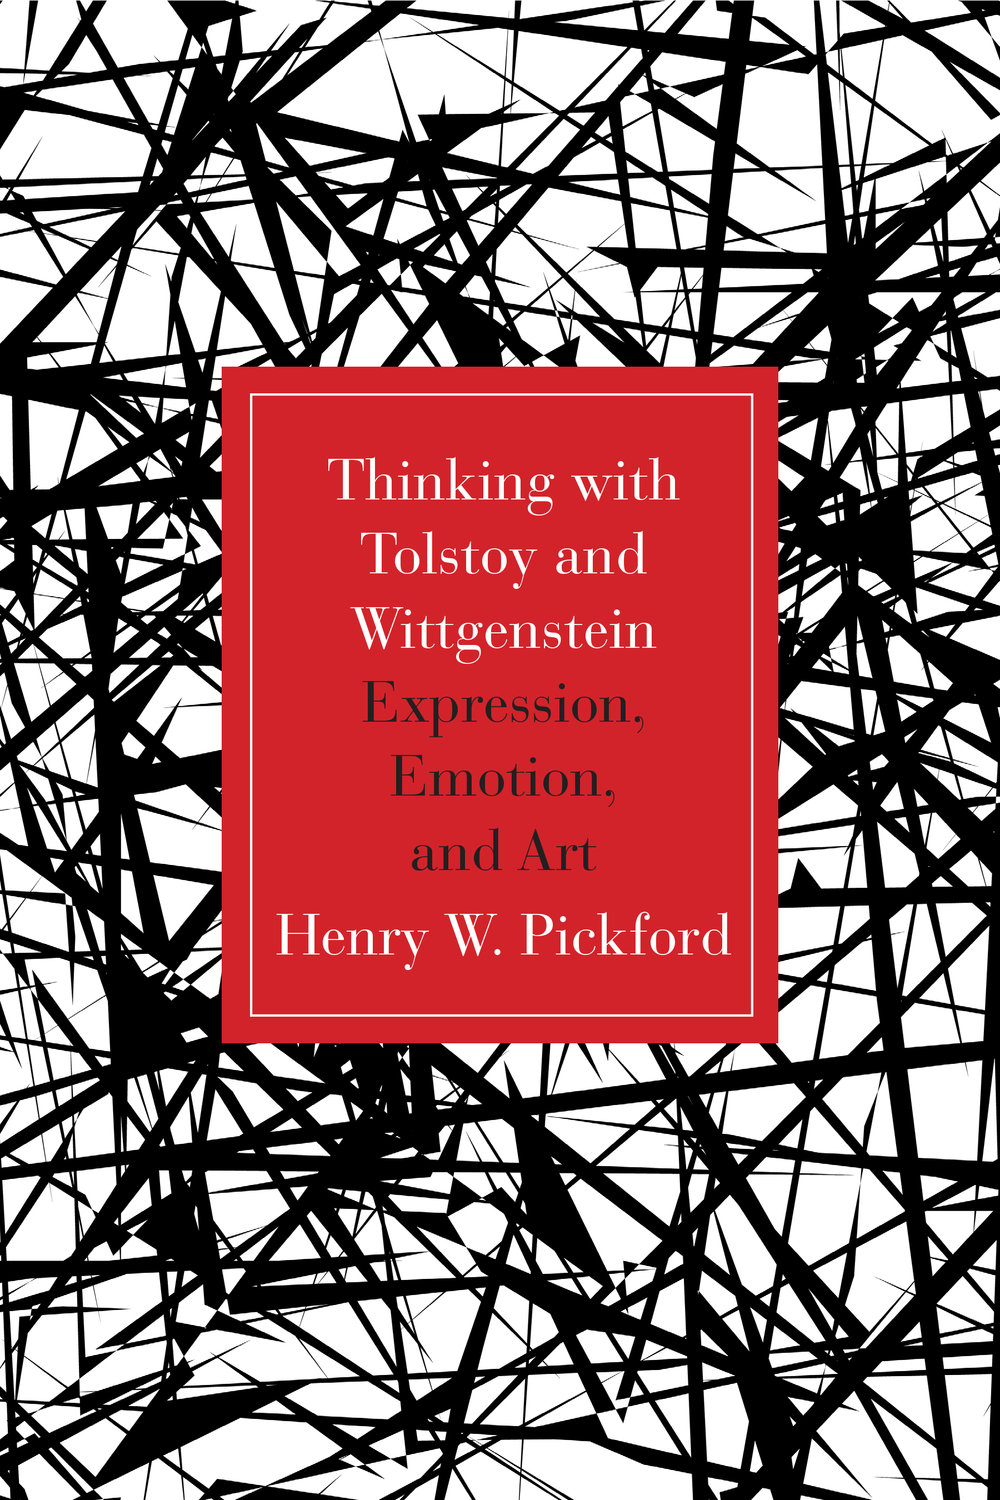 Thinking with Tolstoy and Wittgenstein Expression, Emotion, and Art by Henry Pickford